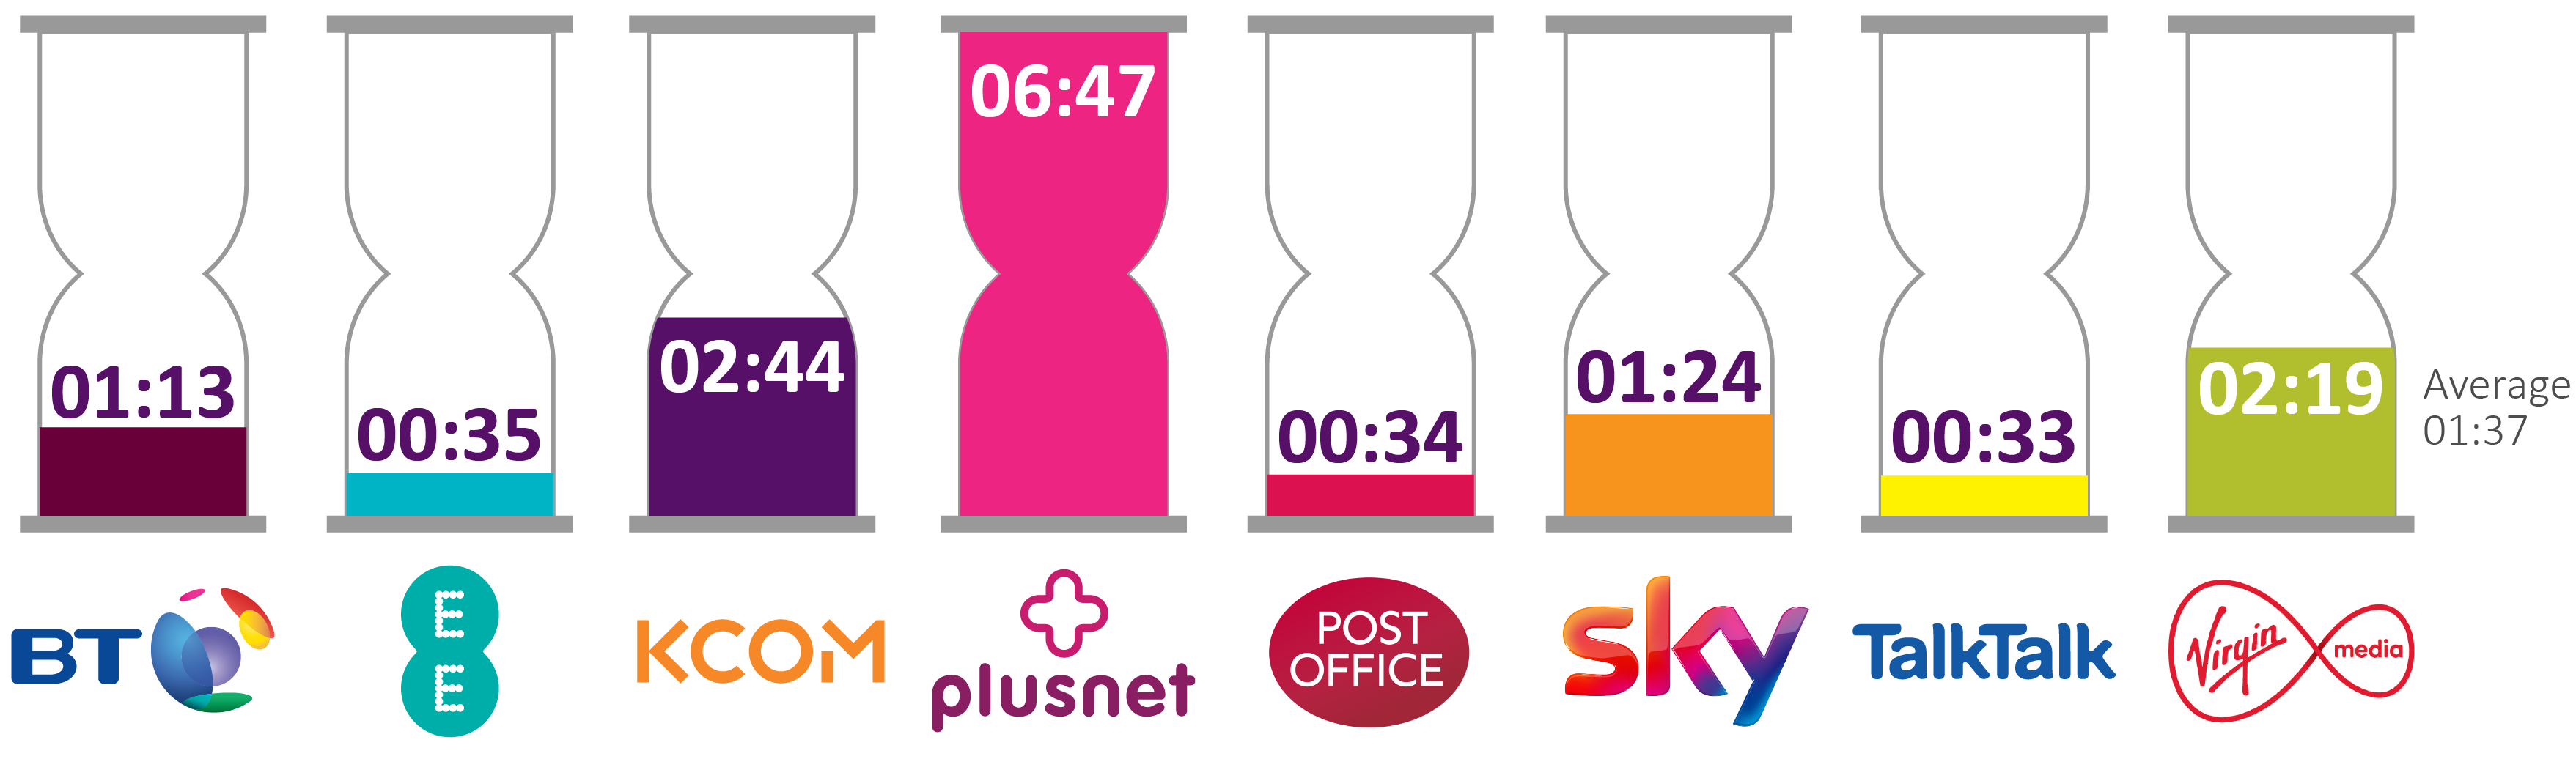 The average call waiting time is 01:37. BT = 01:13. EE = 00:35. KCOM = 02:44. Plusnet = 06:47. Post Office = 00:34. Sky = 01: 24. TalkTalk = 00:33. Virgin Mobile  = 02:19.